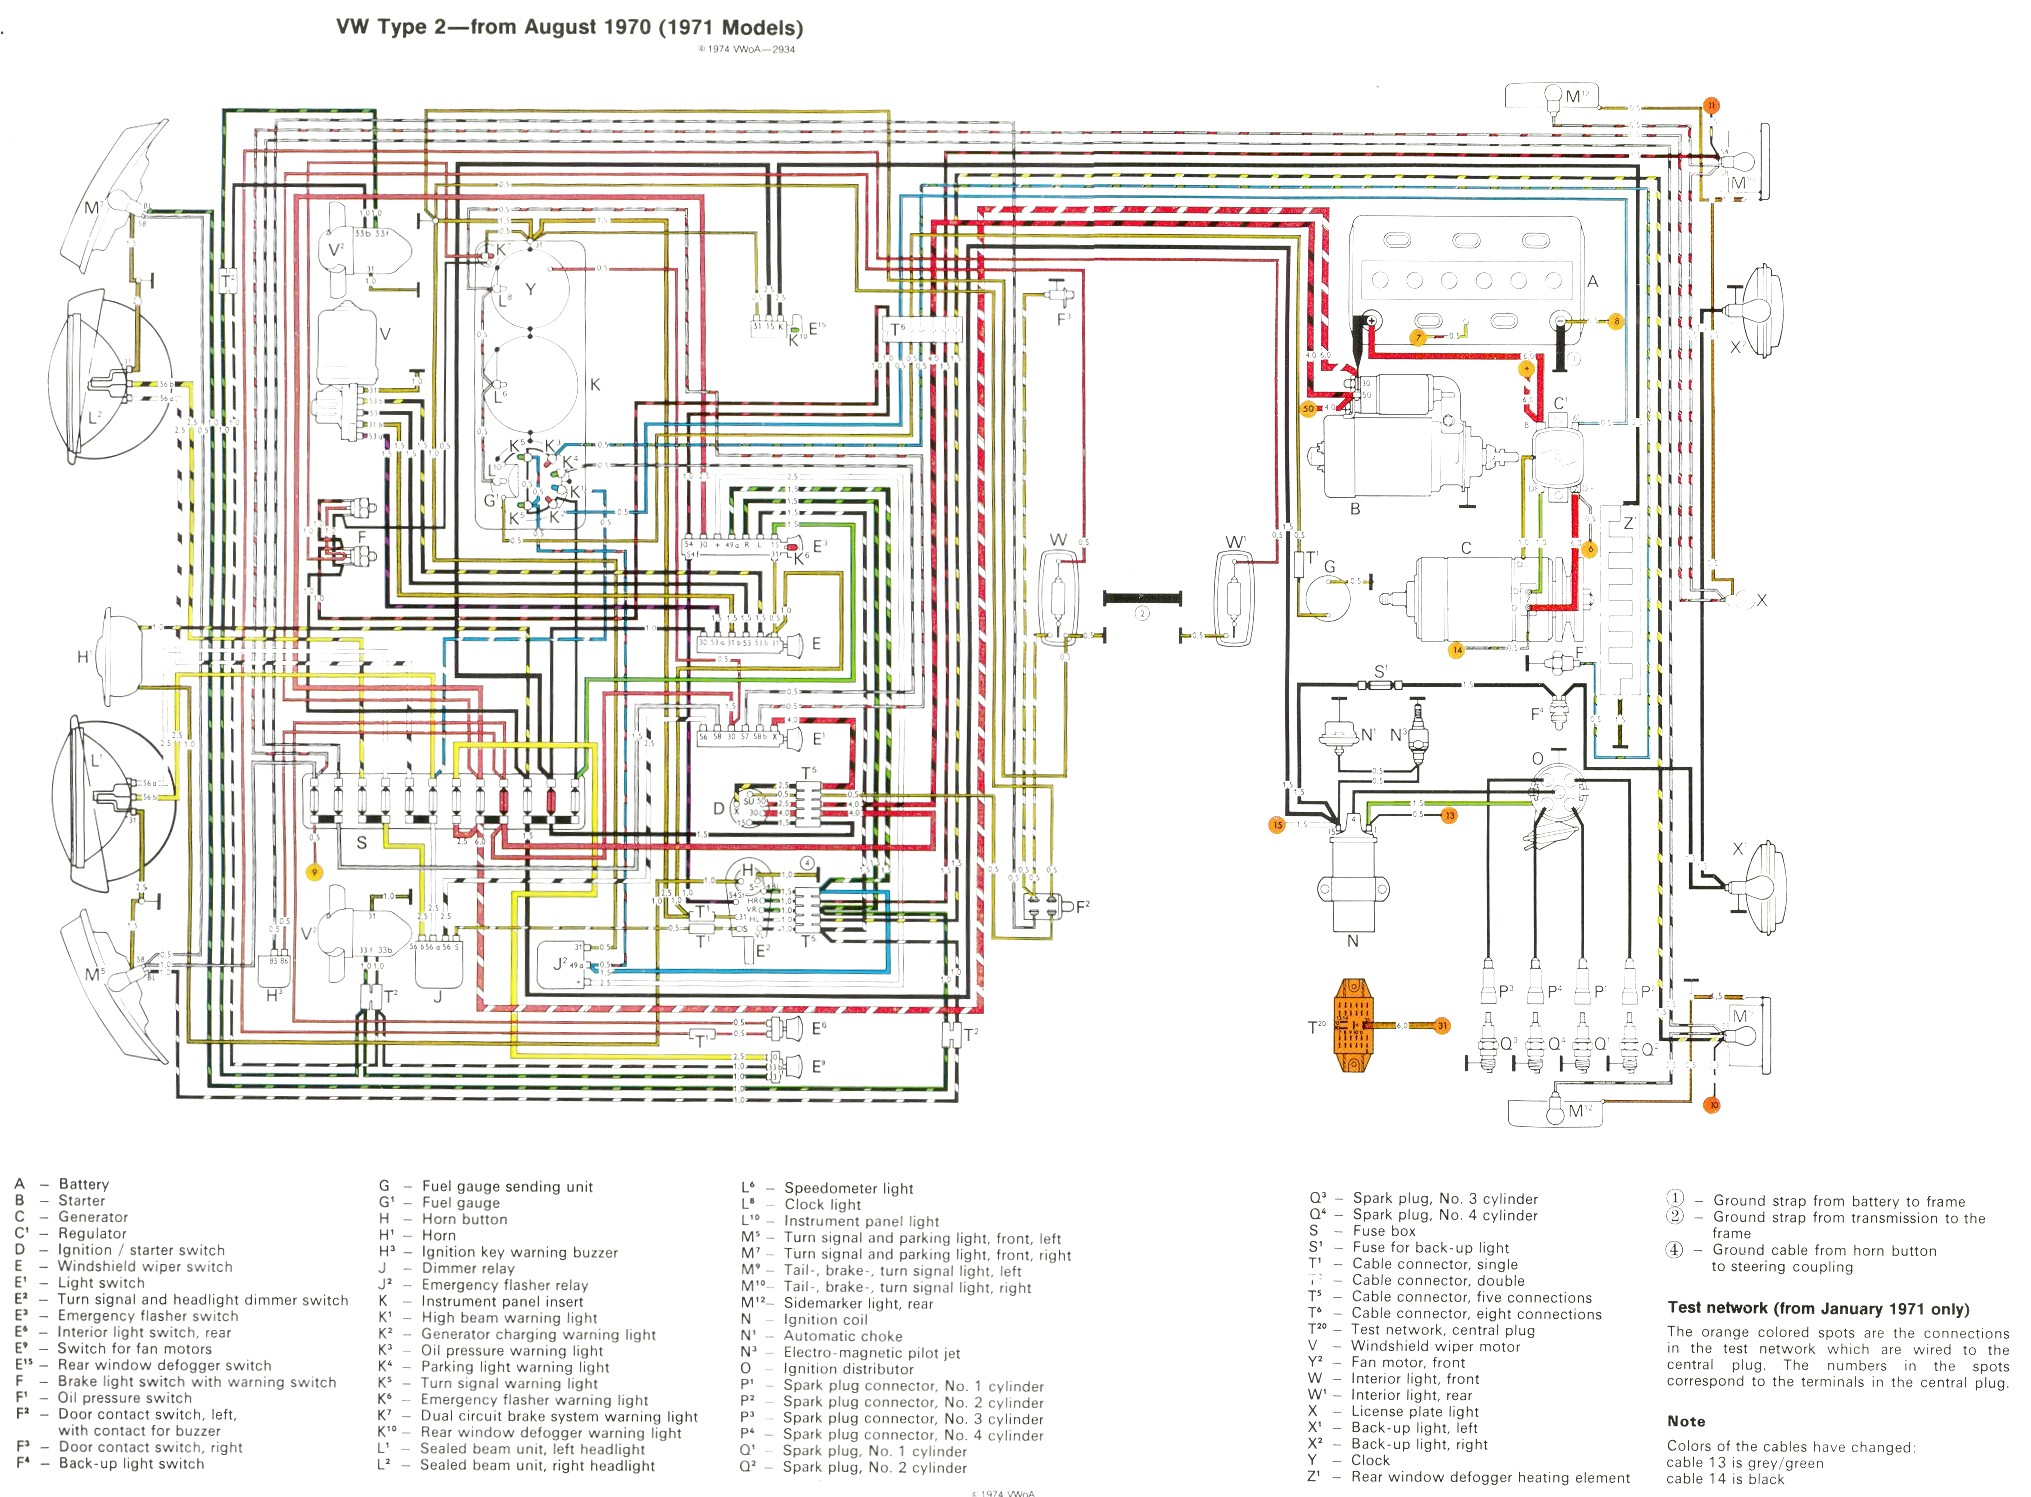 Vw wiring diagrams asfbconference2016 Image collections